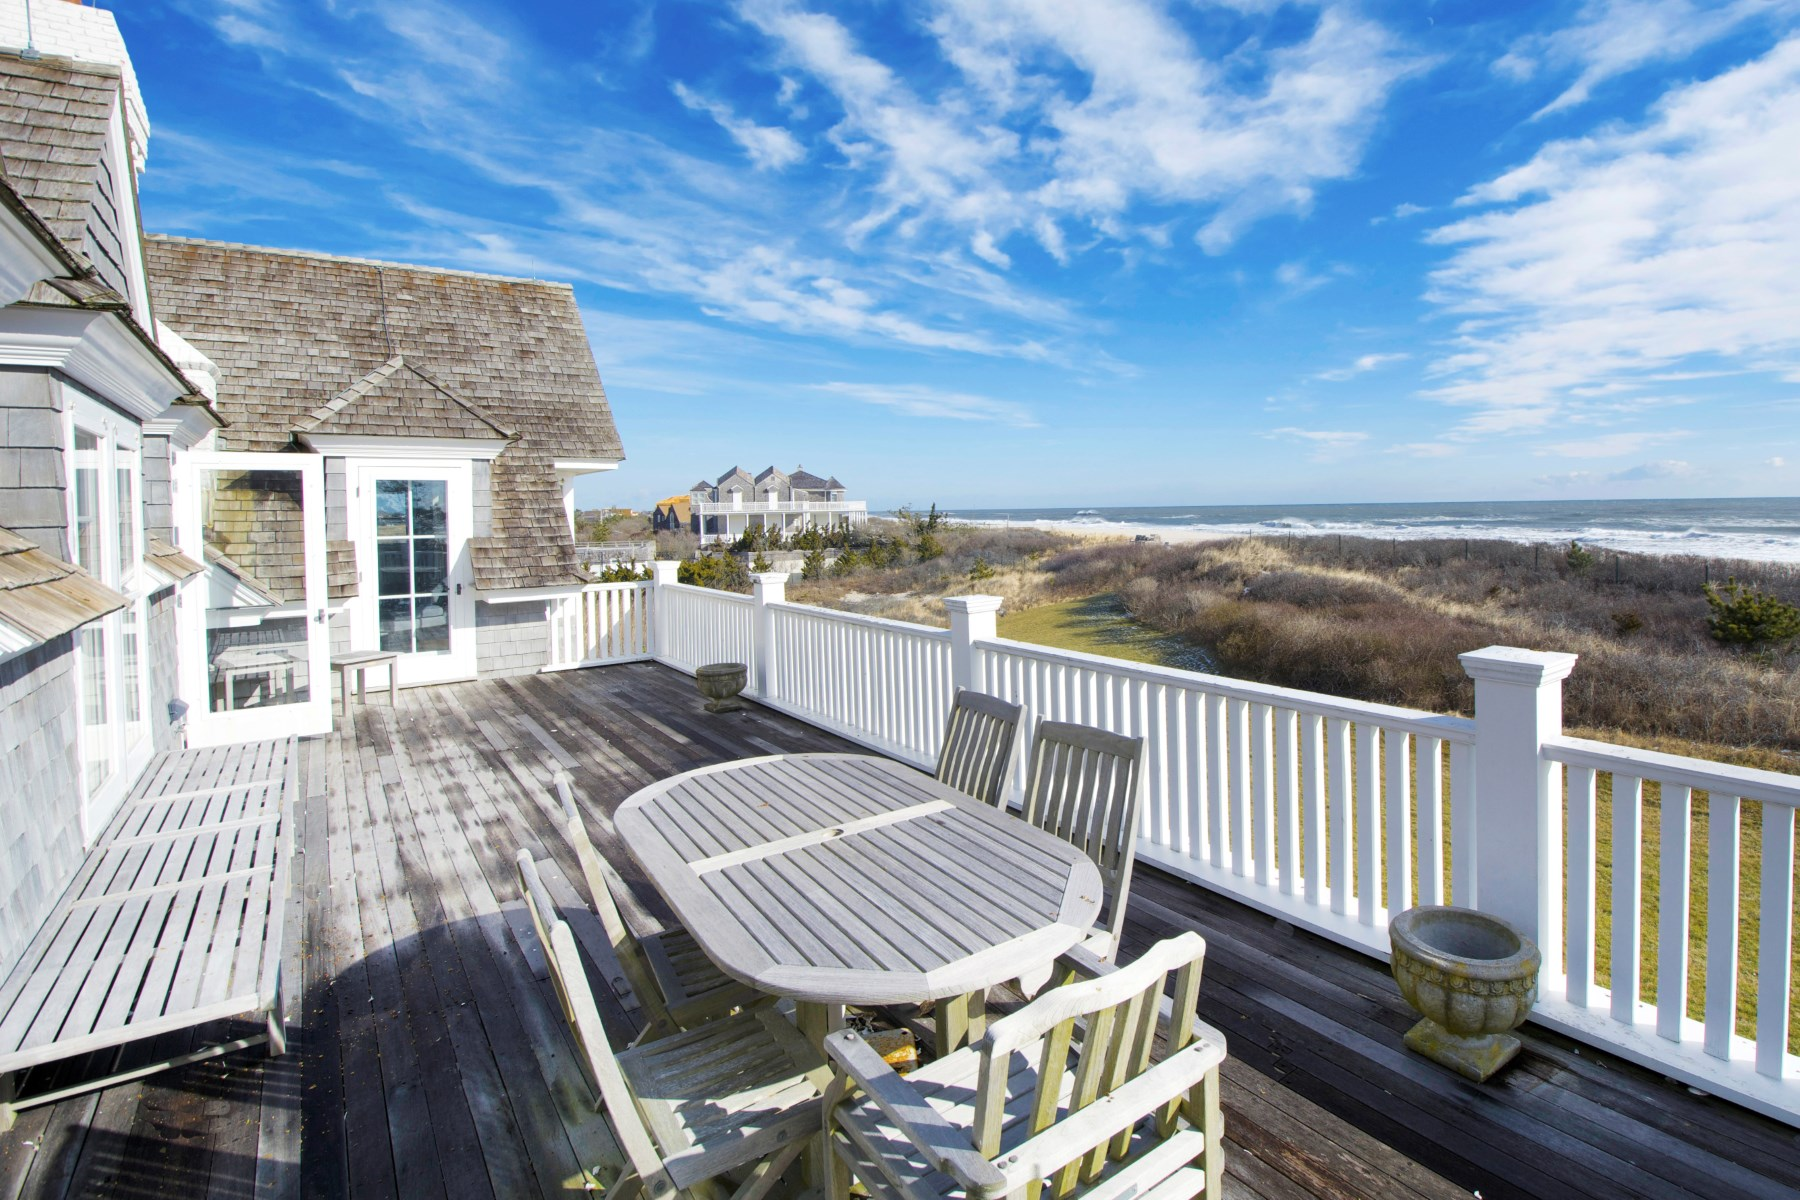 Single Family Home for Rent at World Class Oceanfront Rental 271 Dune Rd Bridgehampton, New York 11932 United States